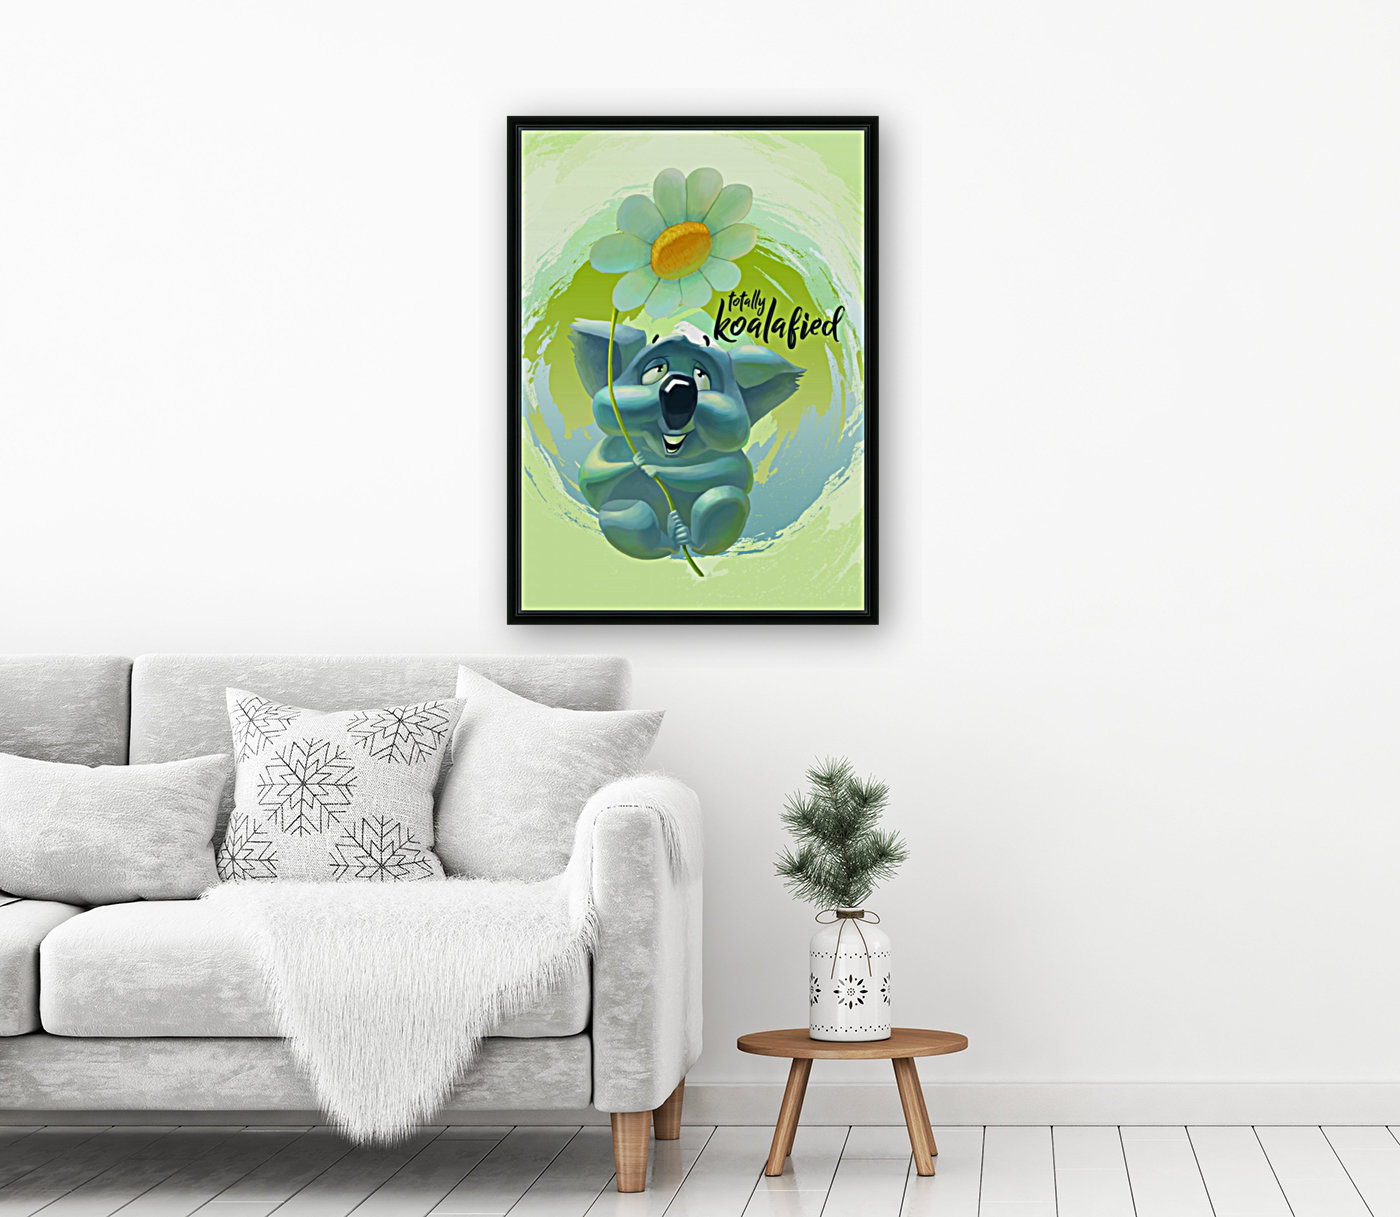 Cute Koala with Floating Frame